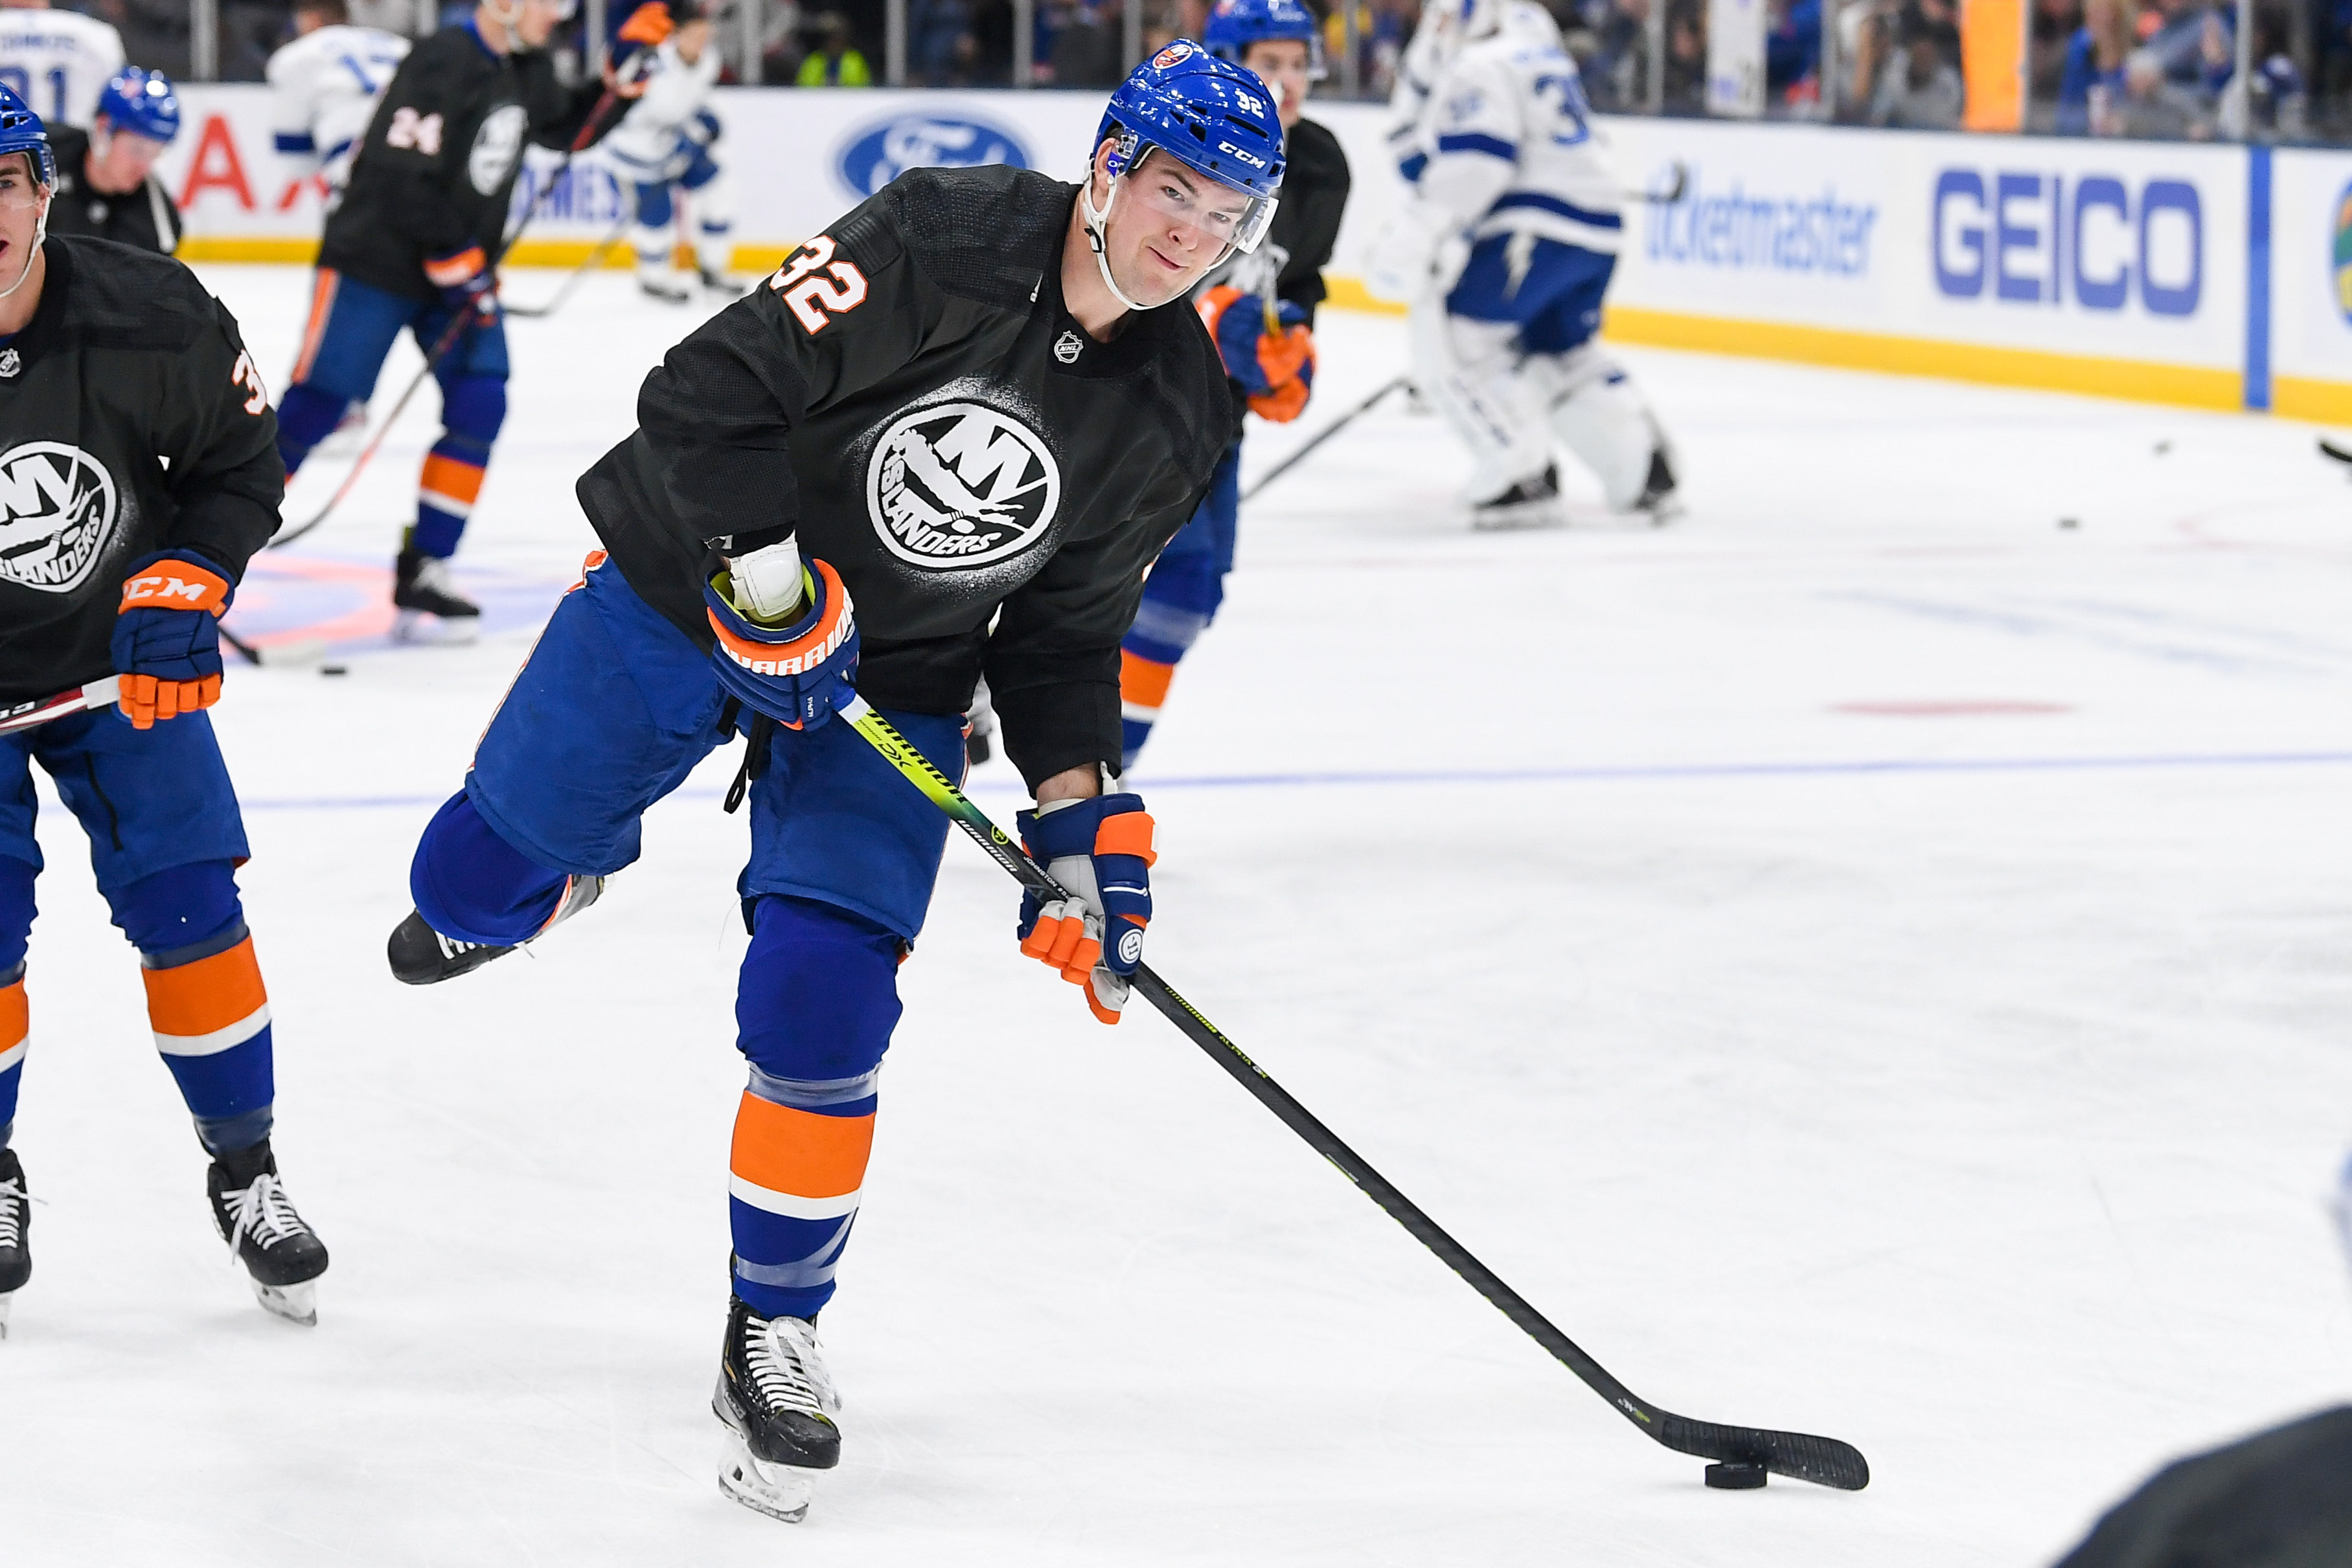 Nov 1, 2019; Uniondale, NY, USA; New York Islanders left wing Ross Johnston (32) wears his Military jersey for Military Appreciation Night before the game against the Tampa Bay Lightning at Nassau Veterans Memorial Coliseum. Mandatory Credit: Dennis Schneidler-USA TODAY Sports